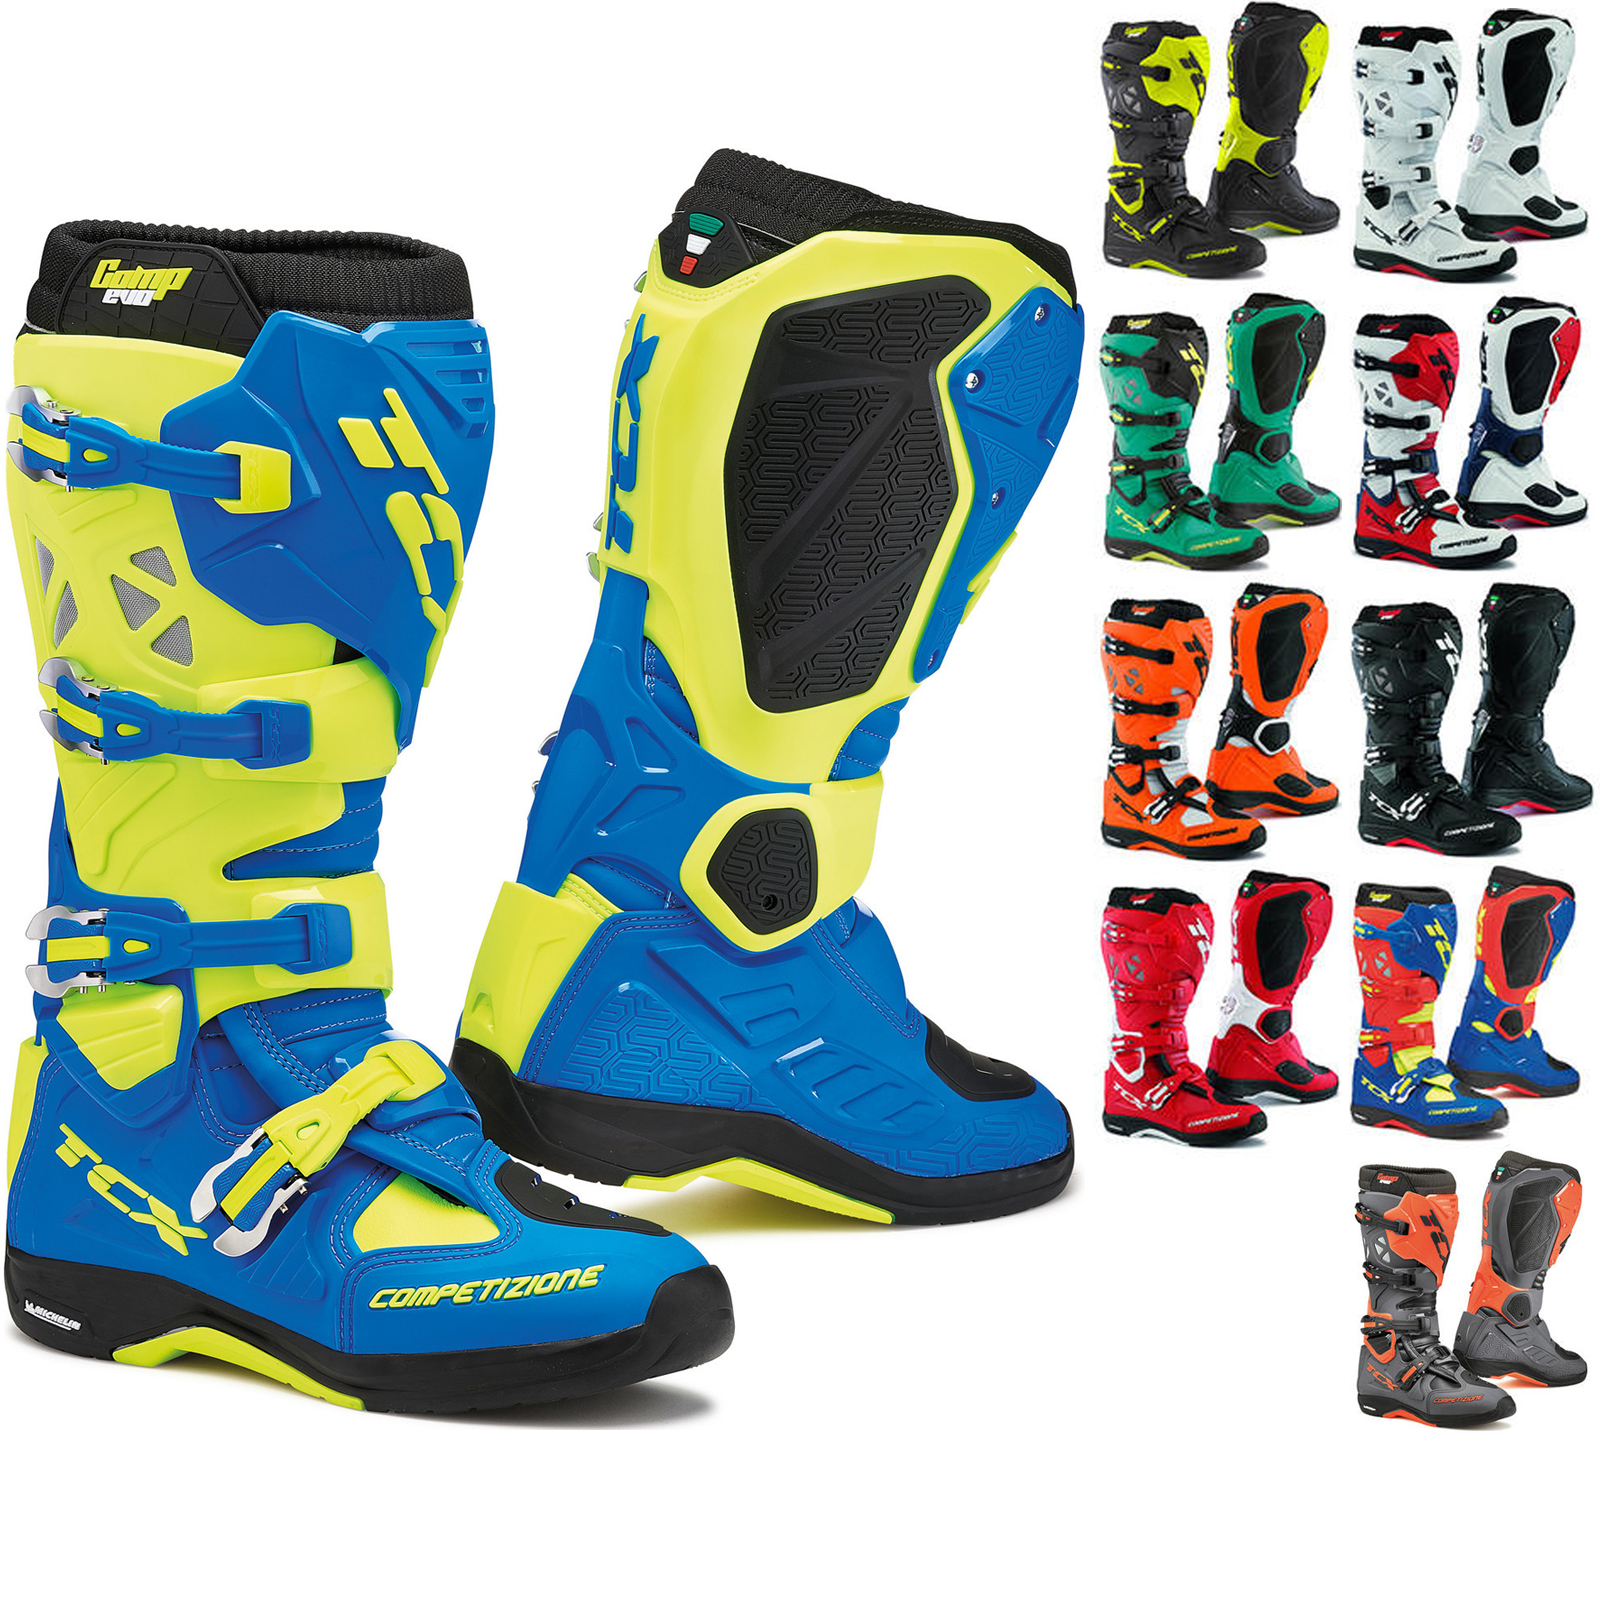 Tcx Comp Evo Michelin Motocross Boots Motocross Boots